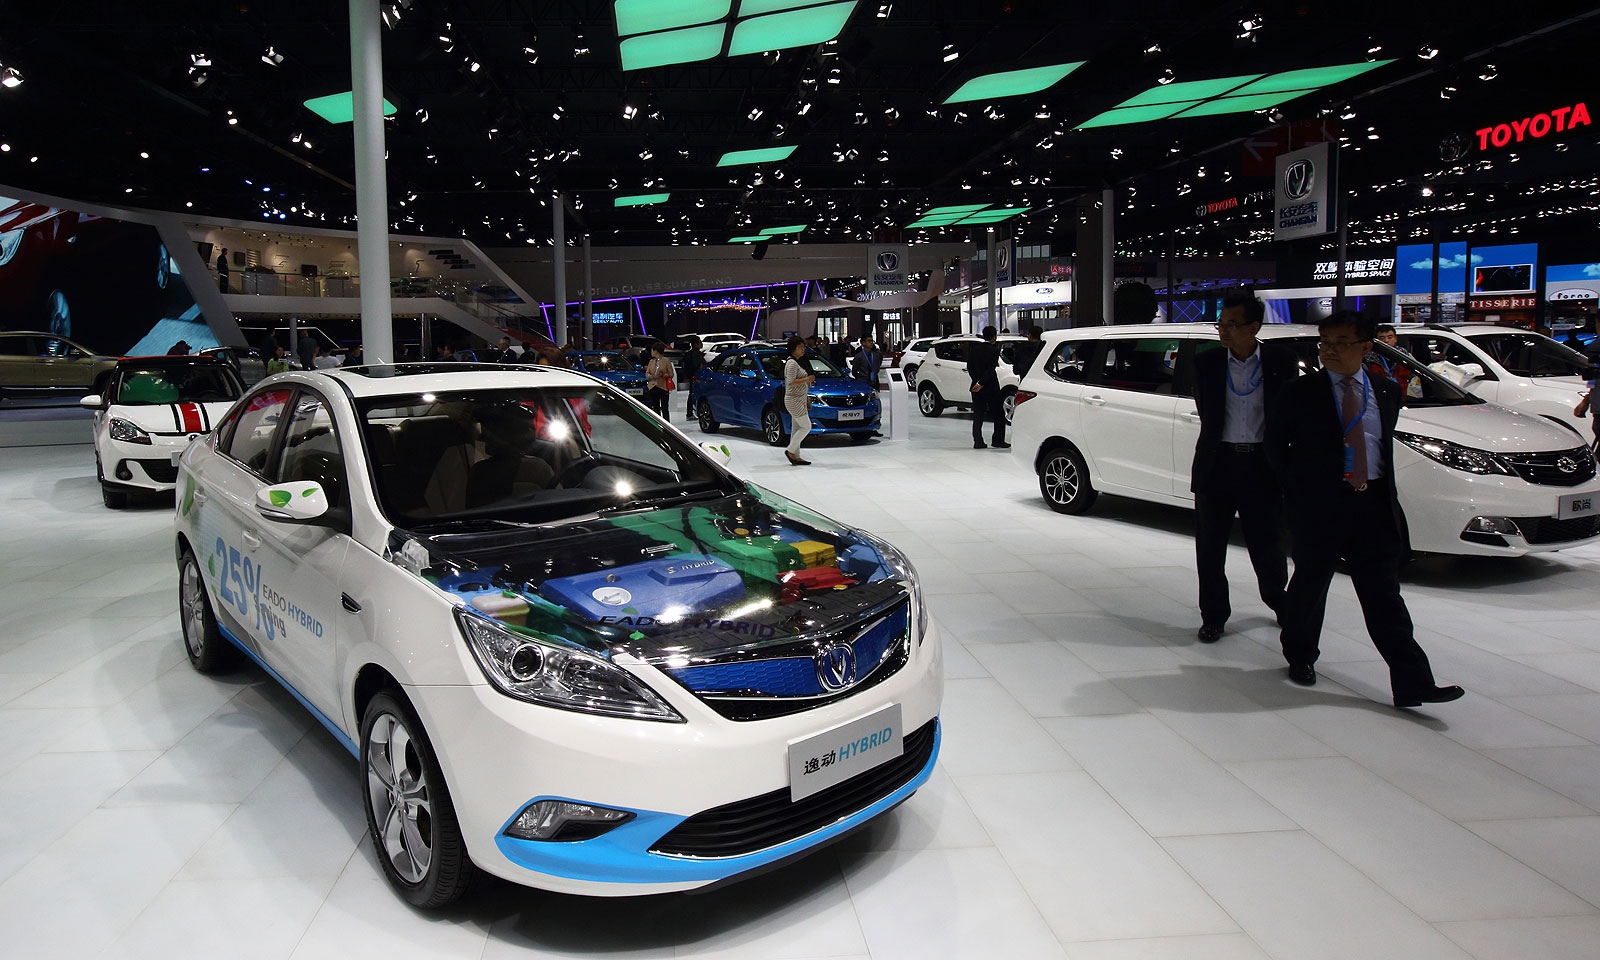 af80ead92de China auto sales rise most in 10 months after tax cut